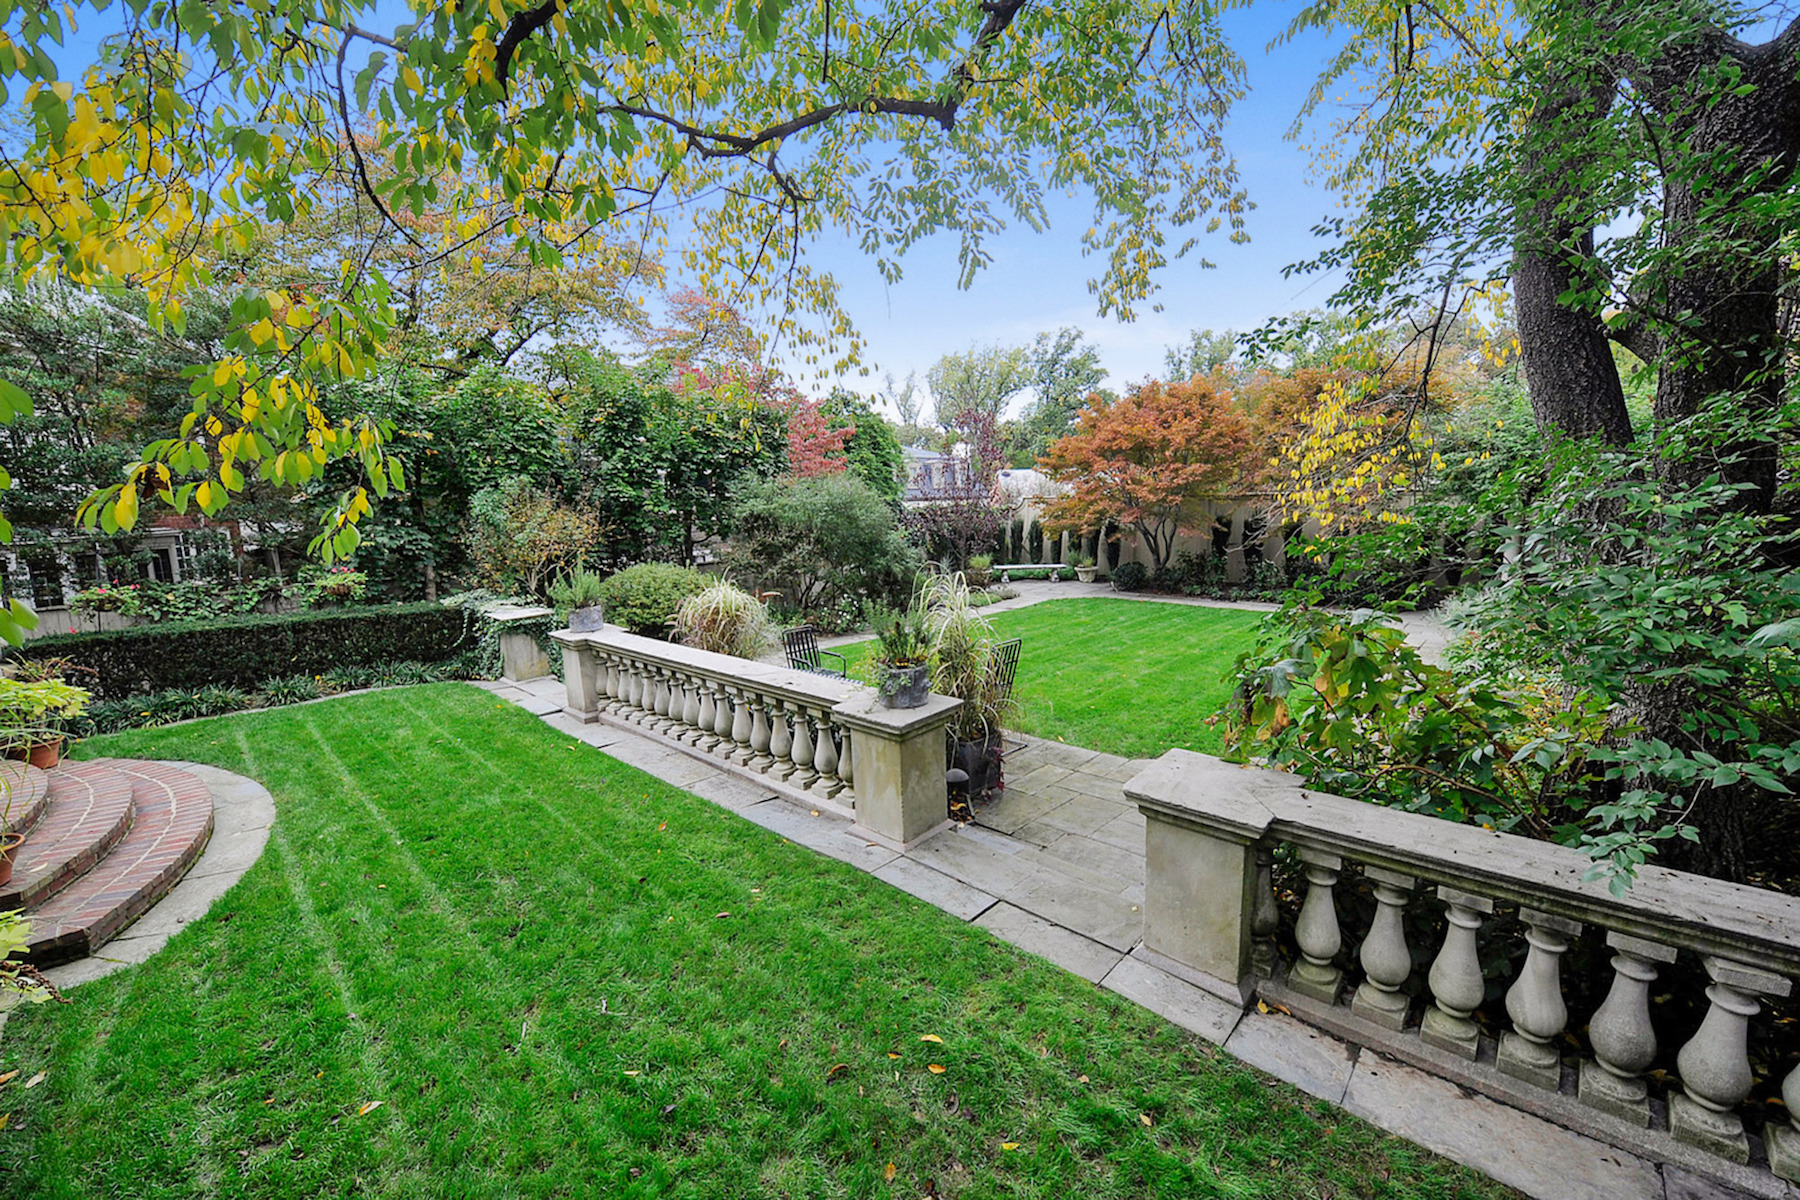 Additional photo for property listing at Kalorama 6 Kalorama Circle Nw Washington, District Of Columbia 20008 United States